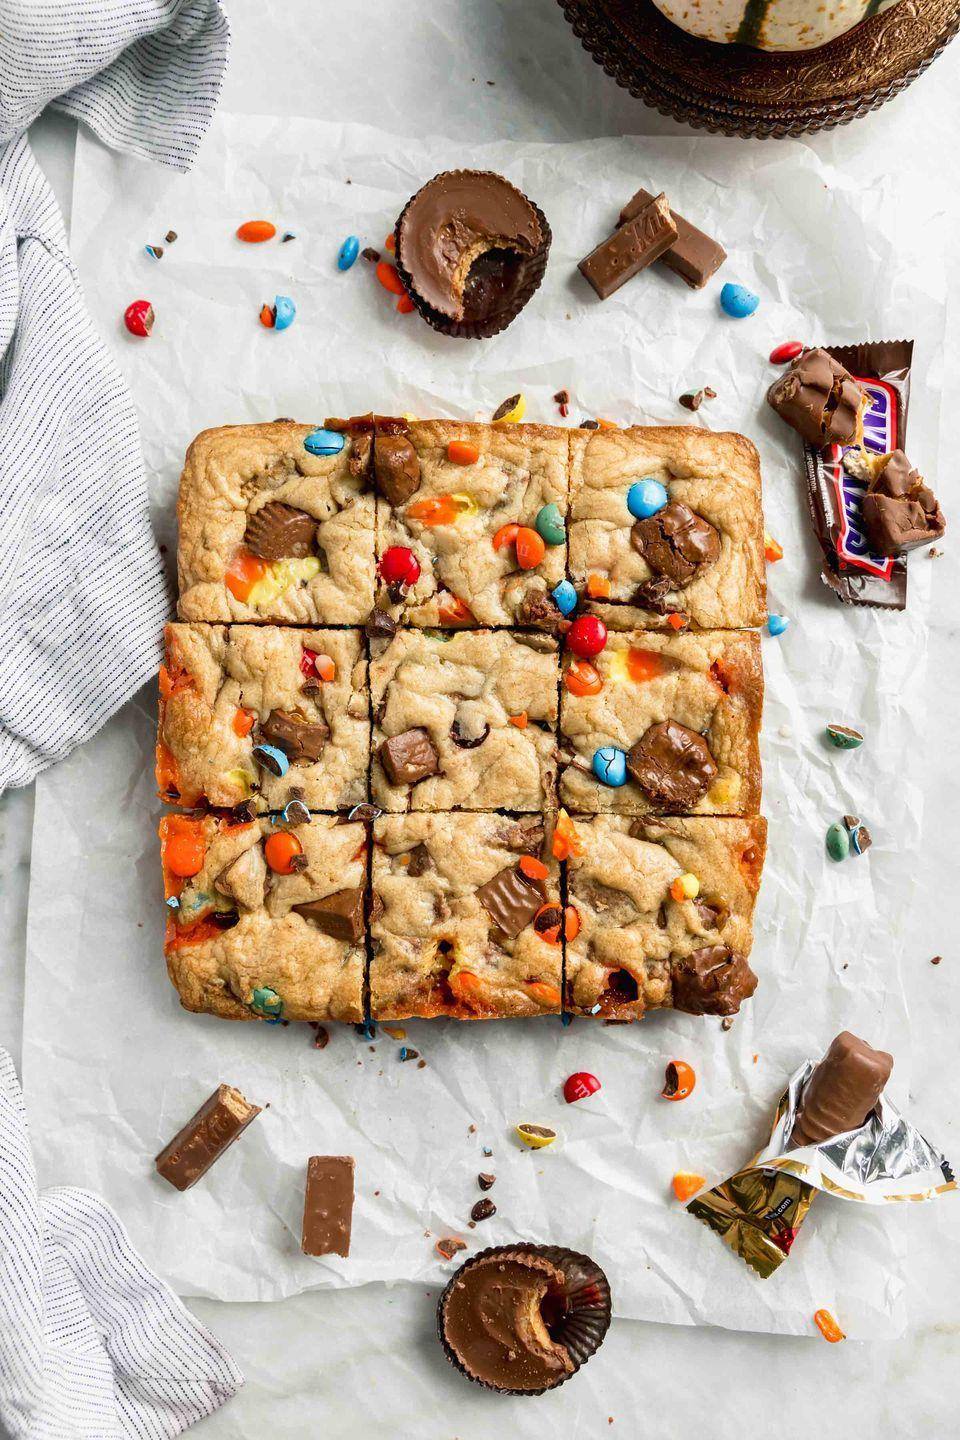 """<p>You can use nearly any type of chocolate candy in this recipe: Chocolate bars, M&Ms, and candy corn are all fair game. Just chop each one into bite-sized pieces and throw it on in.</p><p><strong>Get the recipe at <a href=""""https://bromabakery.com/halloween-candy-cookie-bars/"""" rel=""""nofollow noopener"""" target=""""_blank"""" data-ylk=""""slk:Broma Bakery"""" class=""""link rapid-noclick-resp"""">Broma Bakery</a>.</strong></p><p><a class=""""link rapid-noclick-resp"""" href=""""https://go.redirectingat.com?id=74968X1596630&url=https%3A%2F%2Fwww.walmart.com%2Fip%2FThe-Pioneer-Woman-Spring-Bouquet-2-Piece-Baker-Set%2F595449072&sref=https%3A%2F%2Fwww.thepioneerwoman.com%2Ffood-cooking%2Fmeals-menus%2Fg32110899%2Fbest-halloween-desserts%2F"""" rel=""""nofollow noopener"""" target=""""_blank"""" data-ylk=""""slk:SHOP BAKING PANS"""">SHOP BAKING PANS</a></p>"""